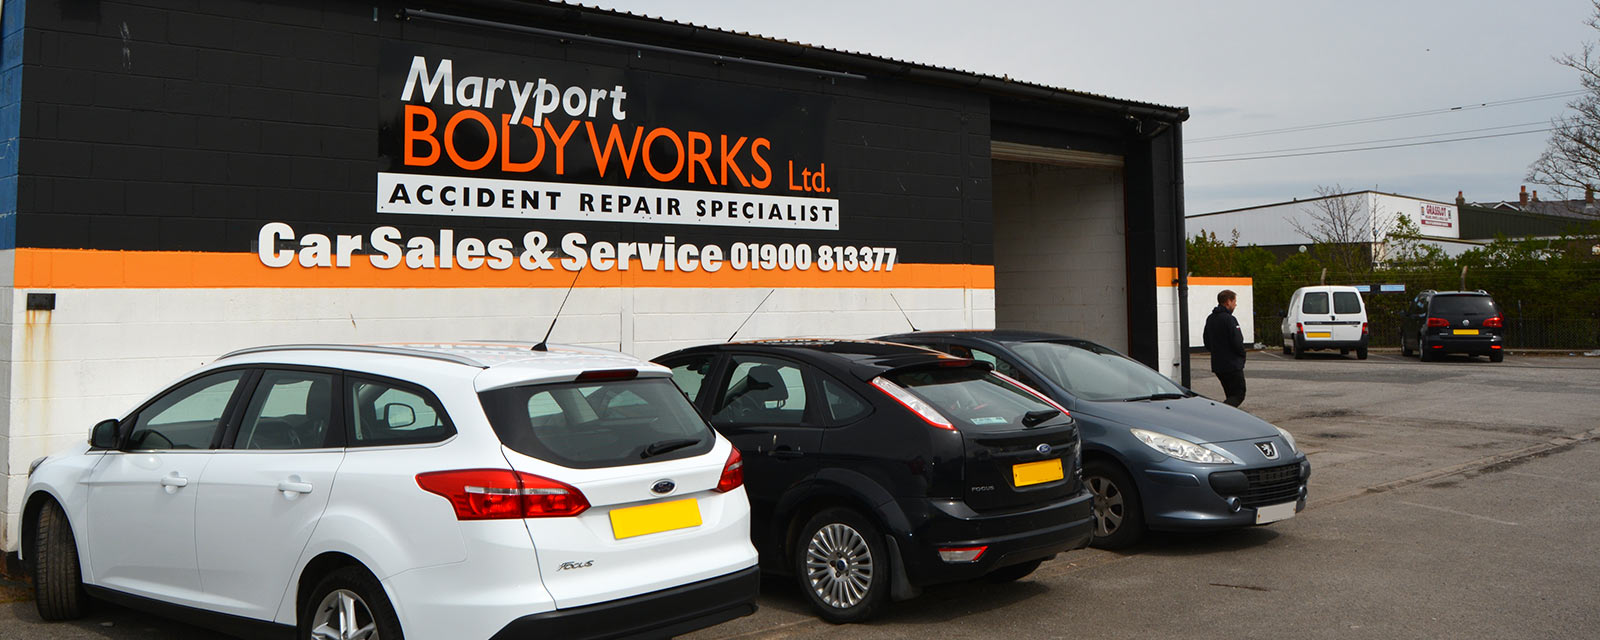 Maryport Bodyworks Ltd